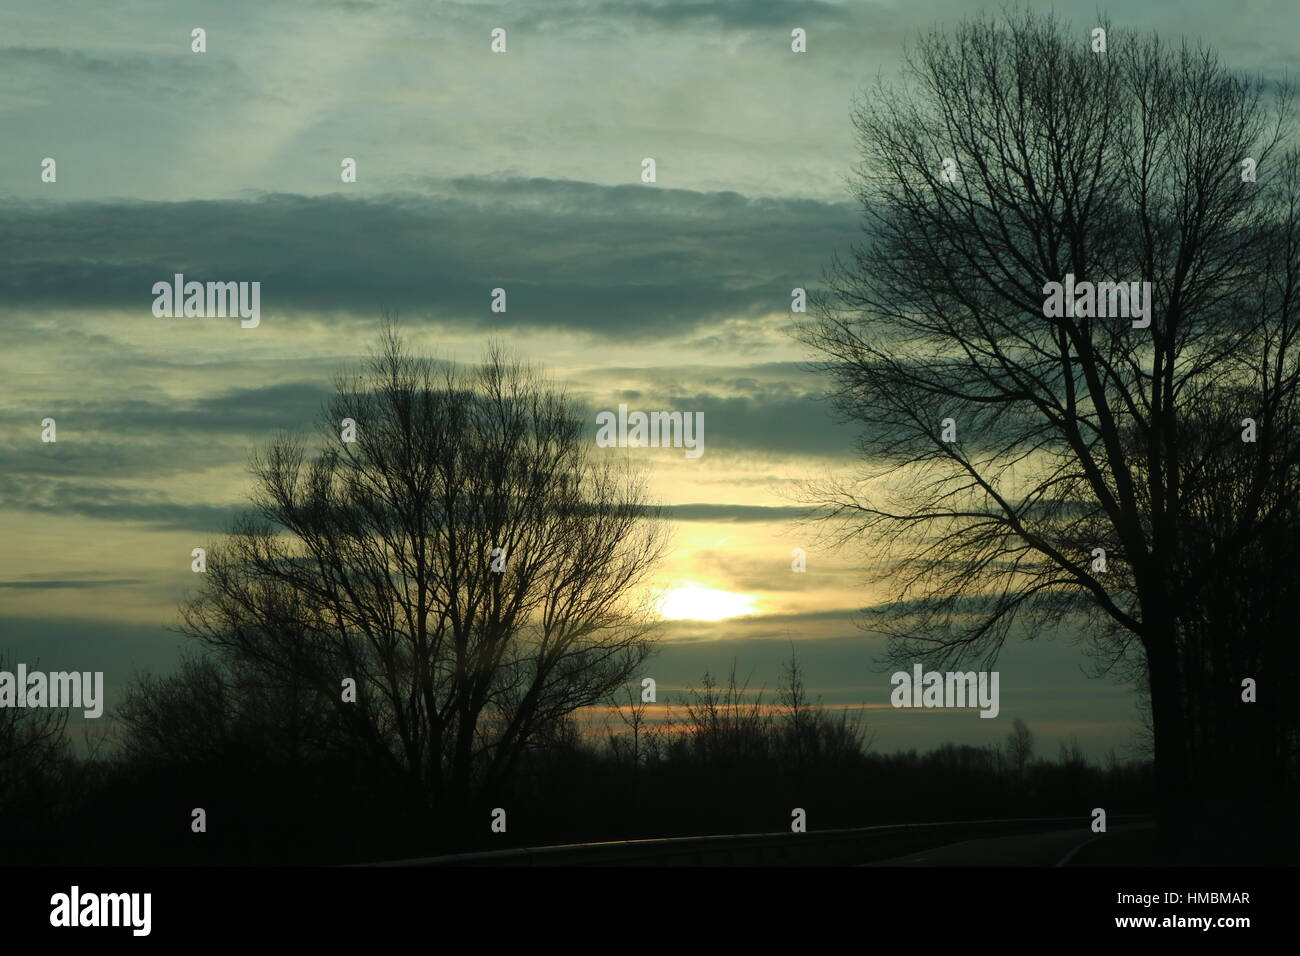 trees in a row during sunset,/sunrise - Stock Image